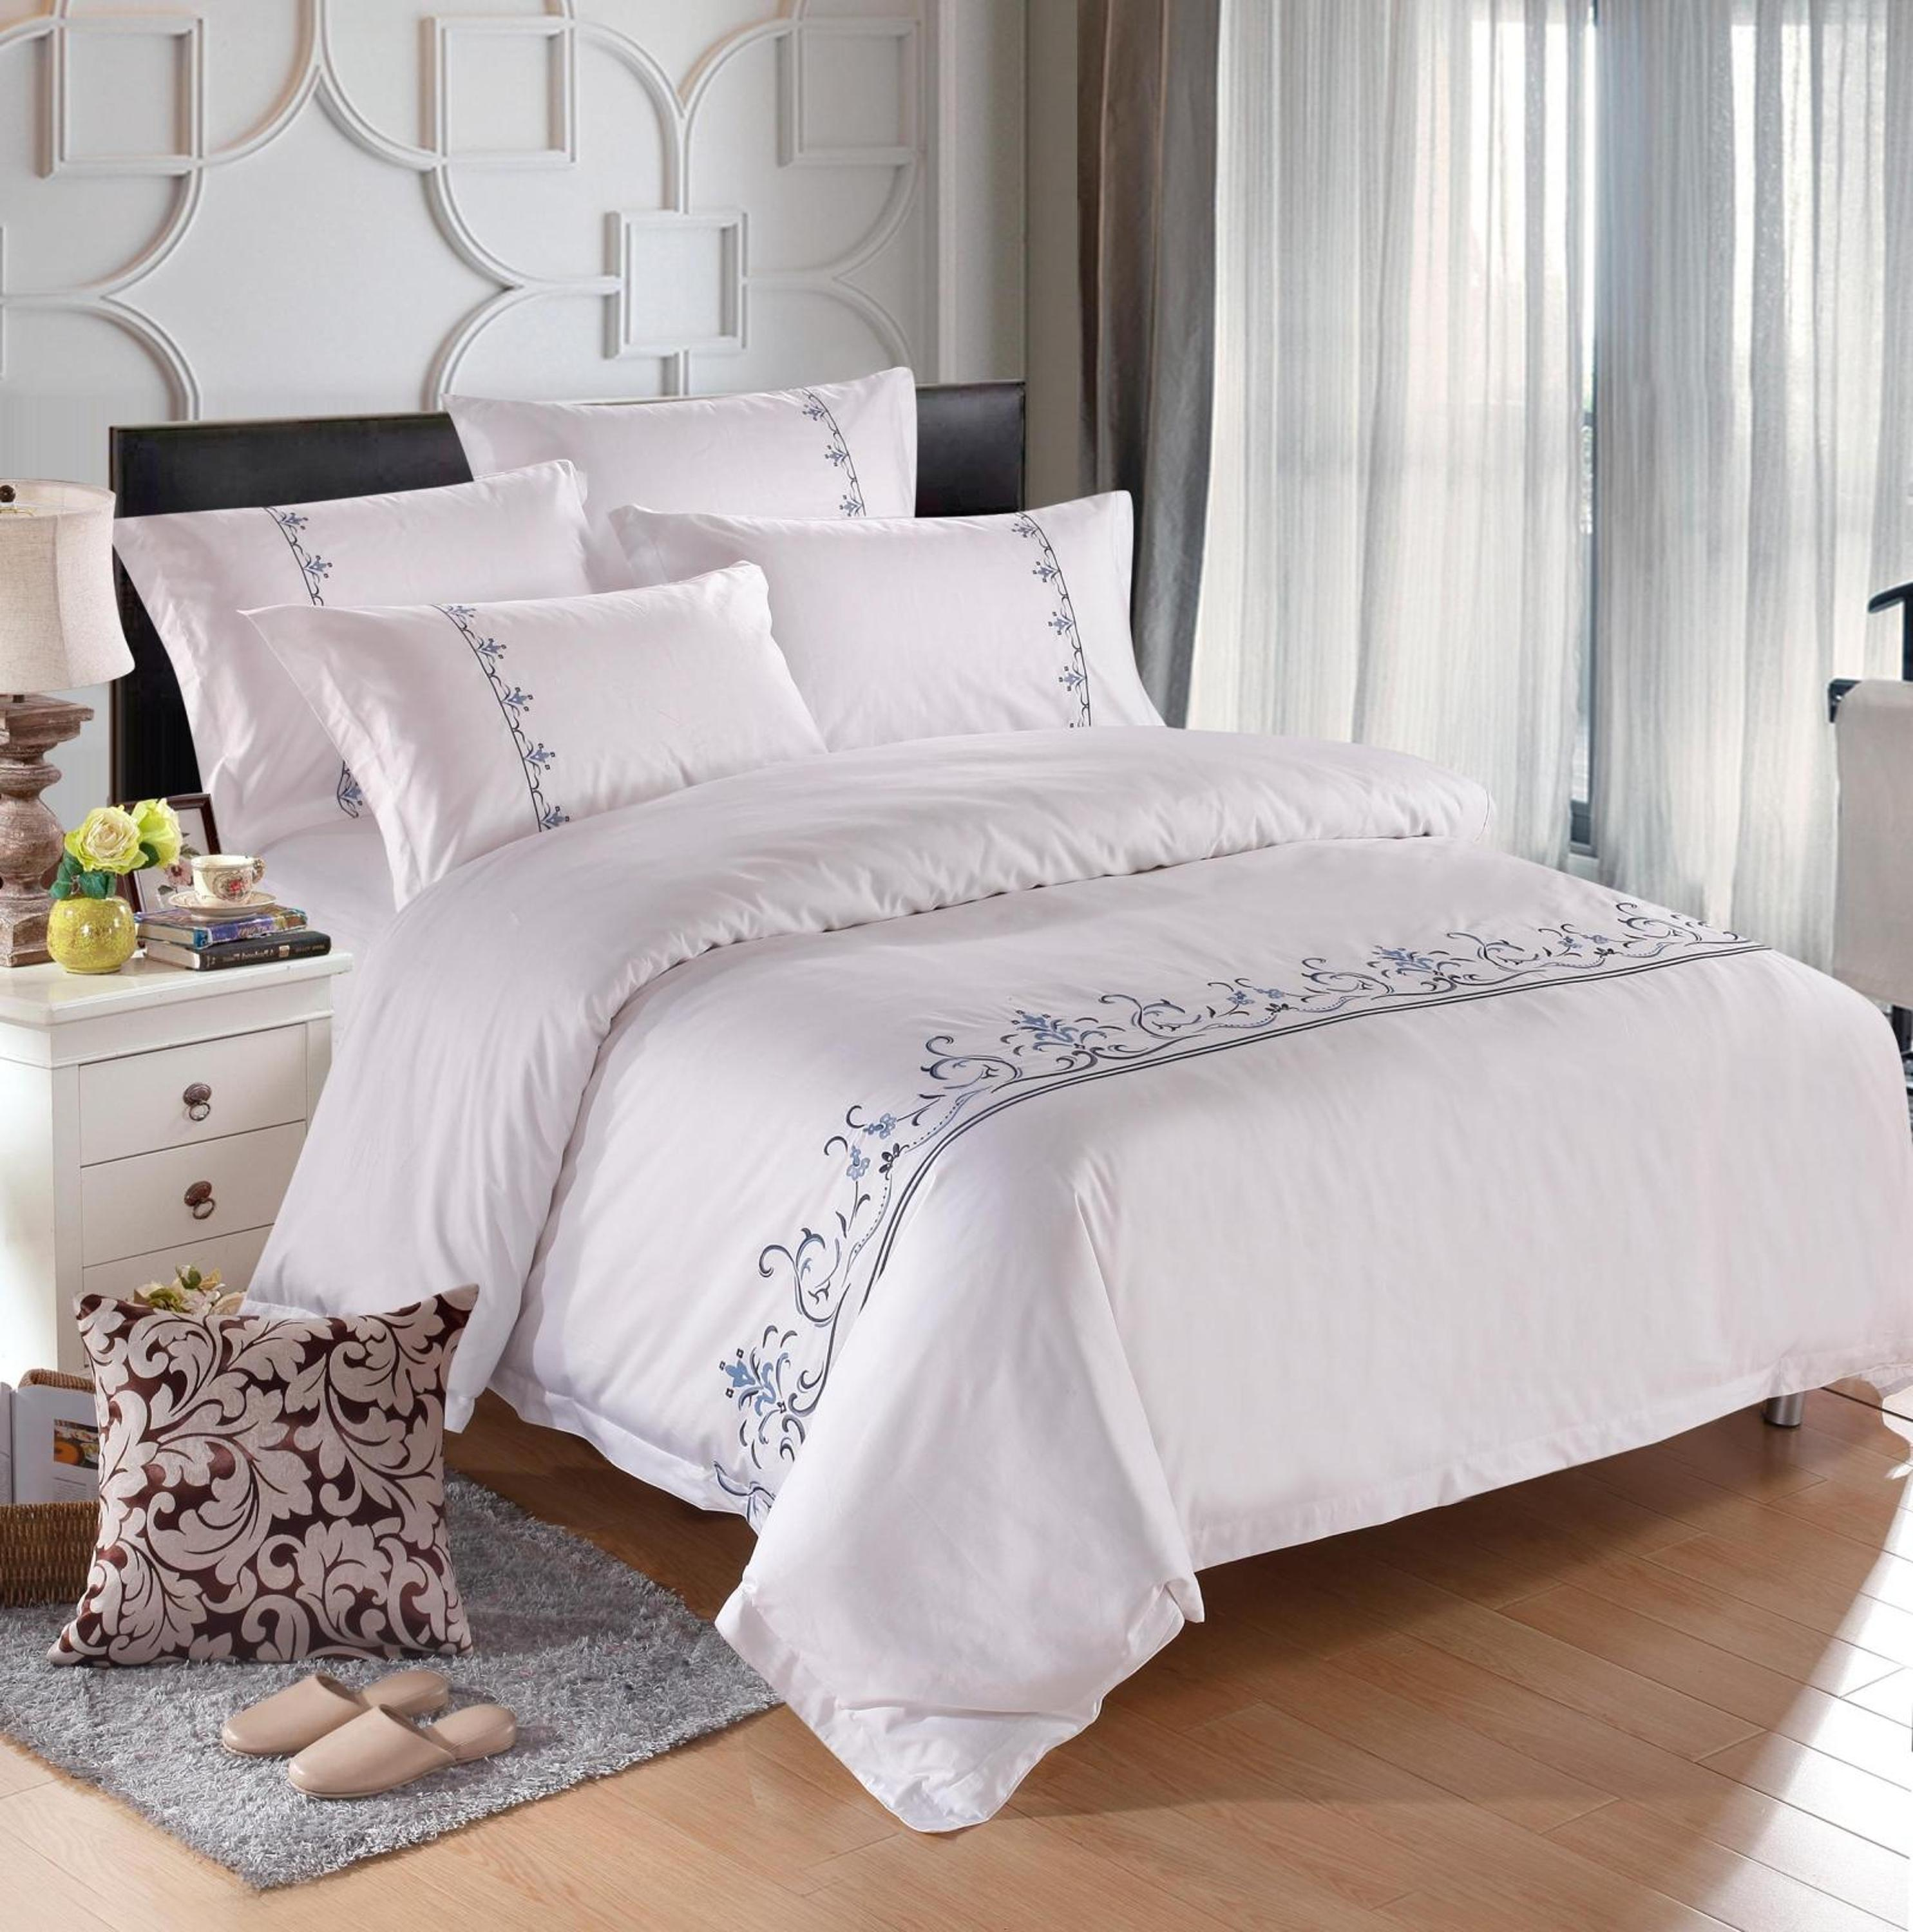 2019 New Style Machine Embroidery Organic Cotton Handmade Bed Sheets Design